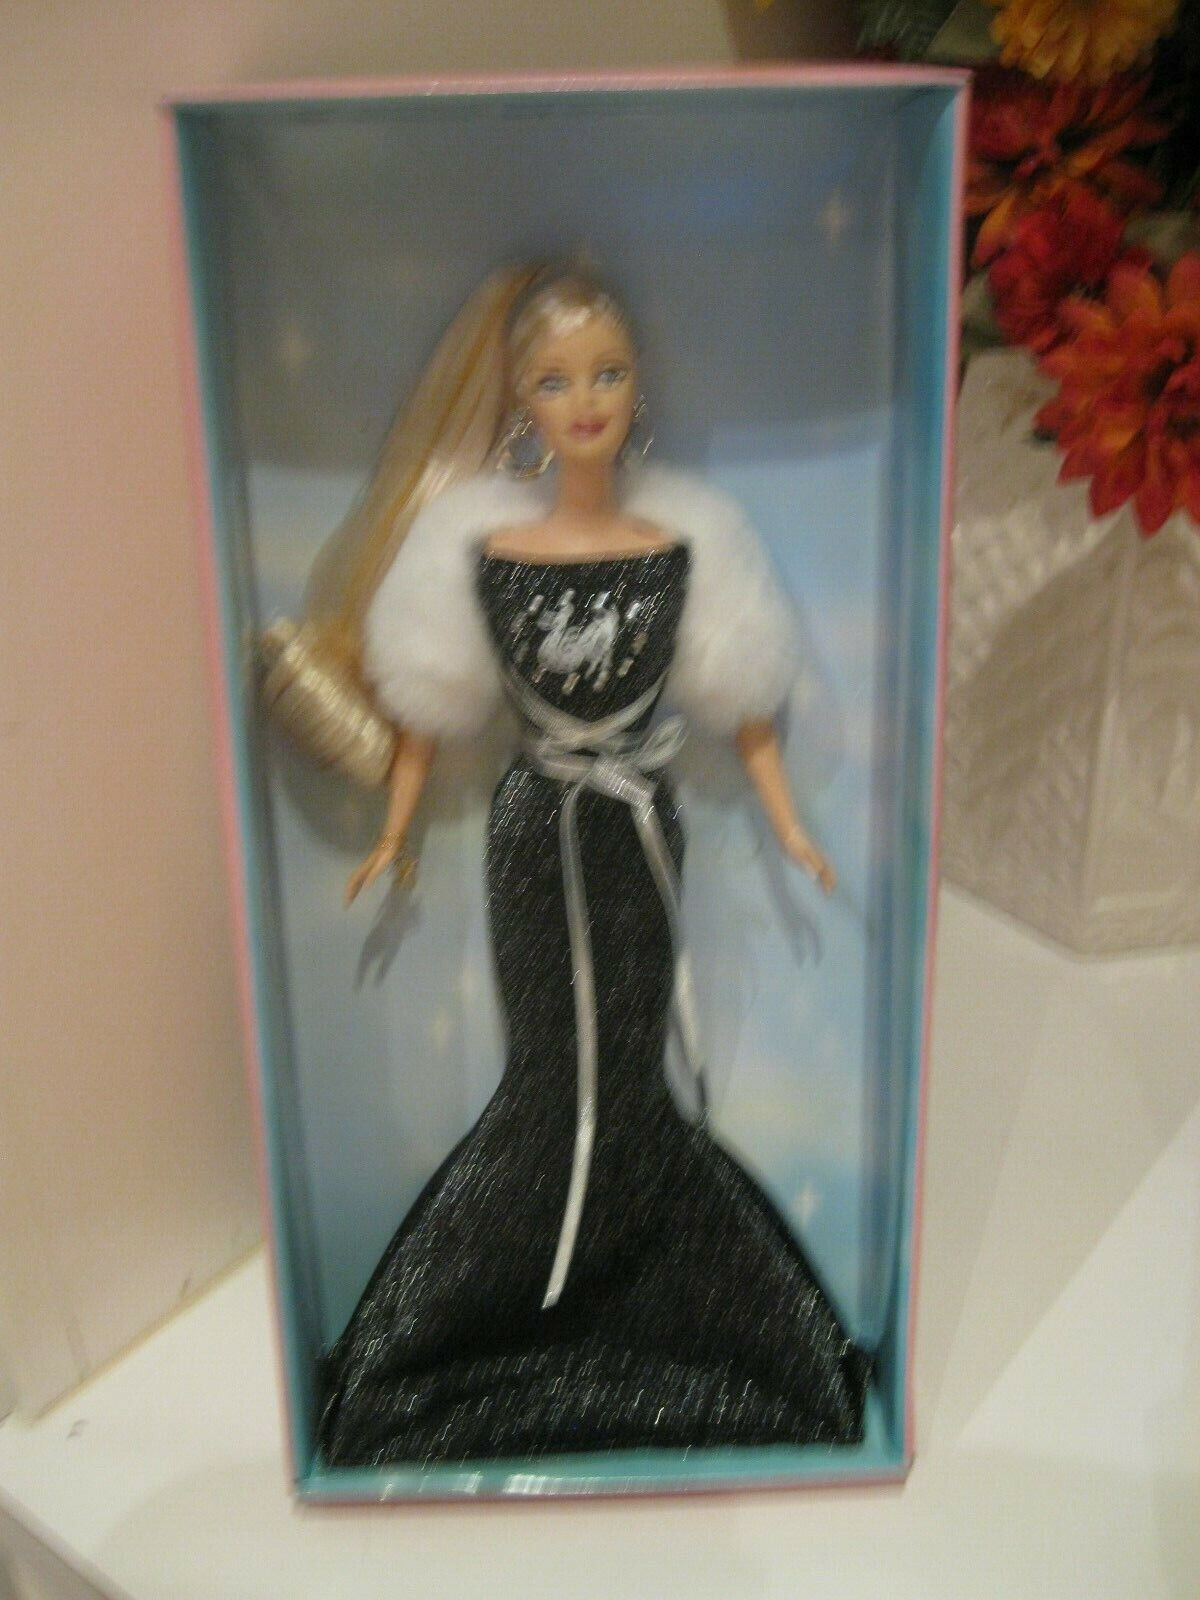 2004 Barbie Doll Astrological sign of Capricorn Collection Series